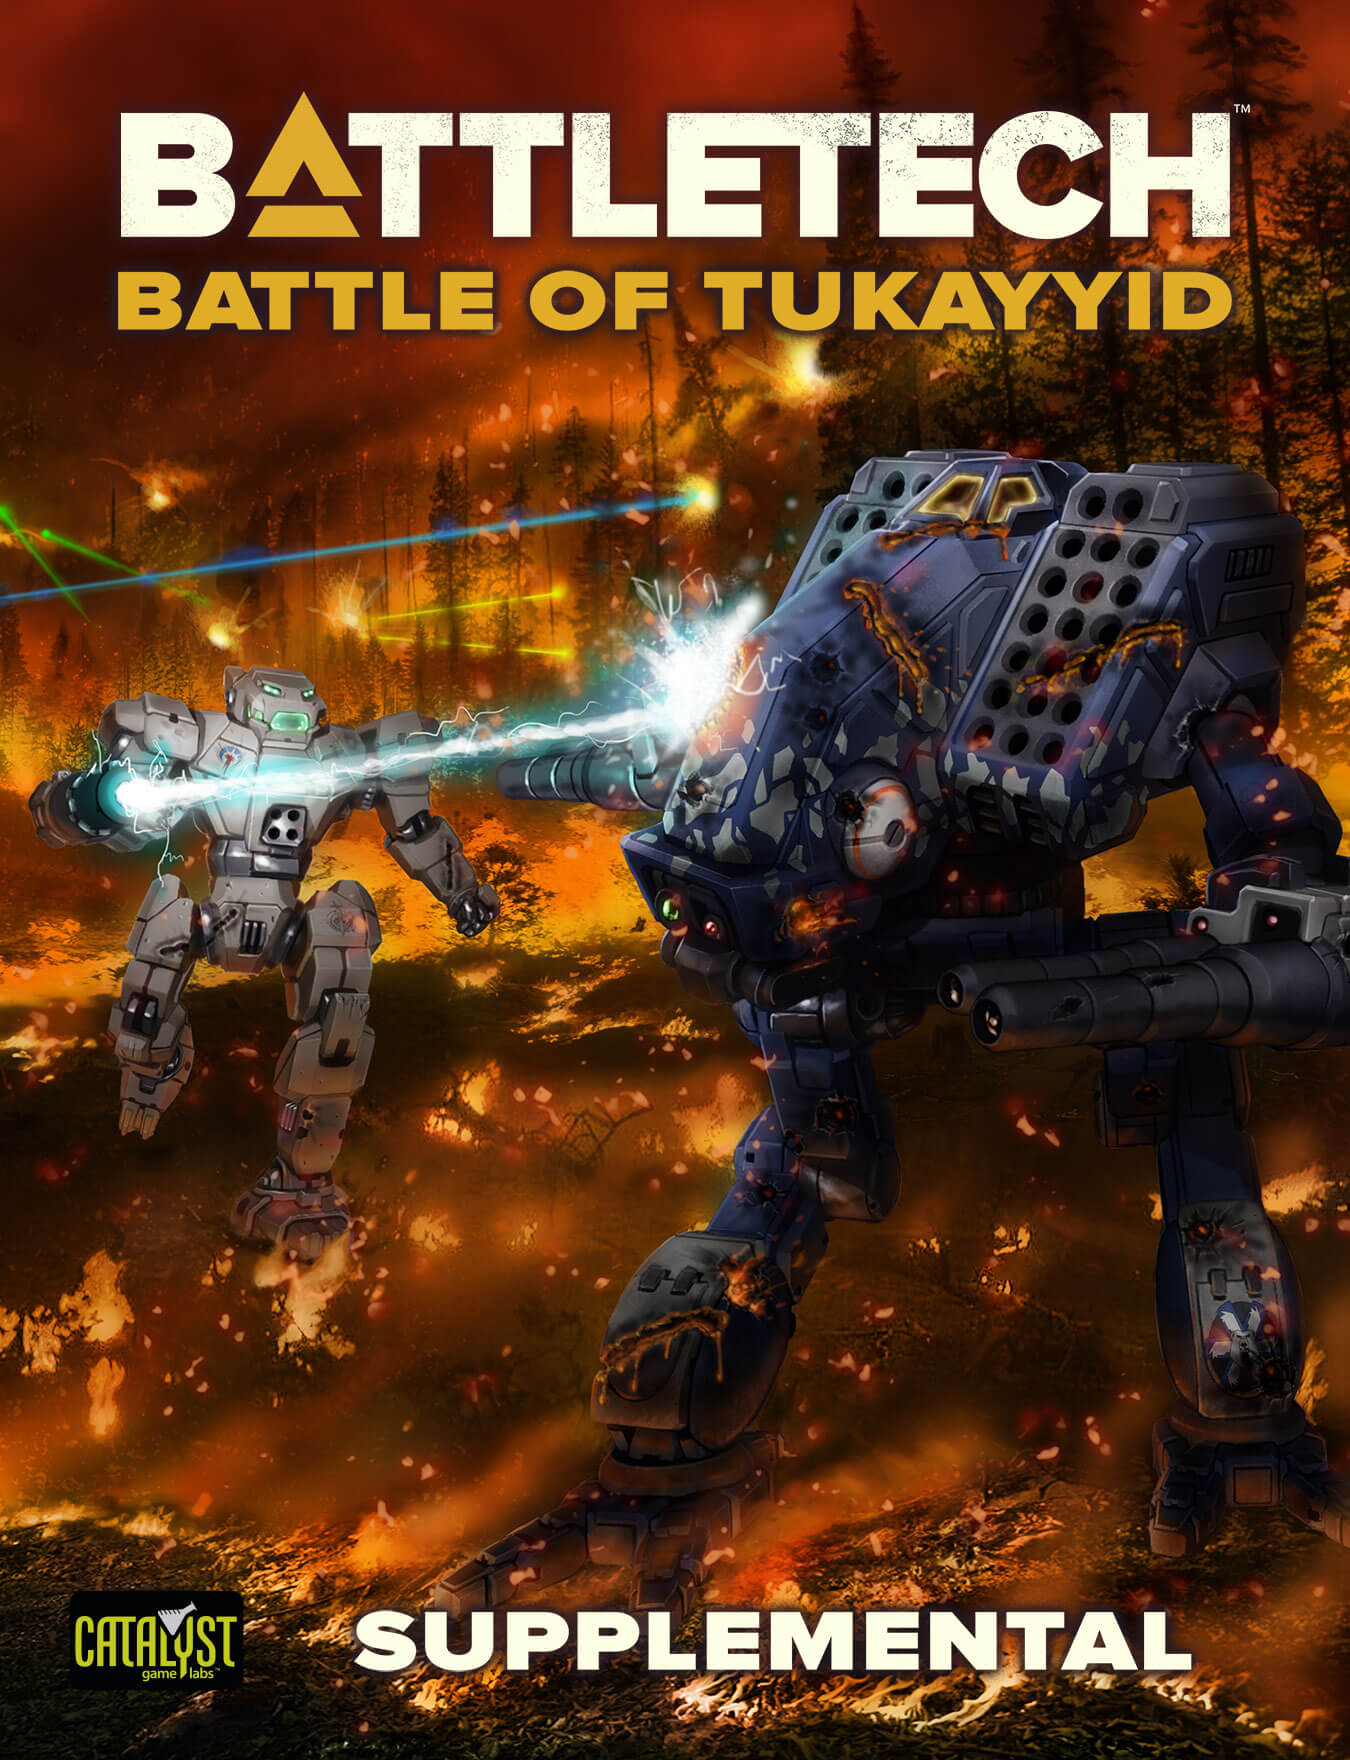 Battle-of-Tukayyid-SUPPLEMENTAL-cover